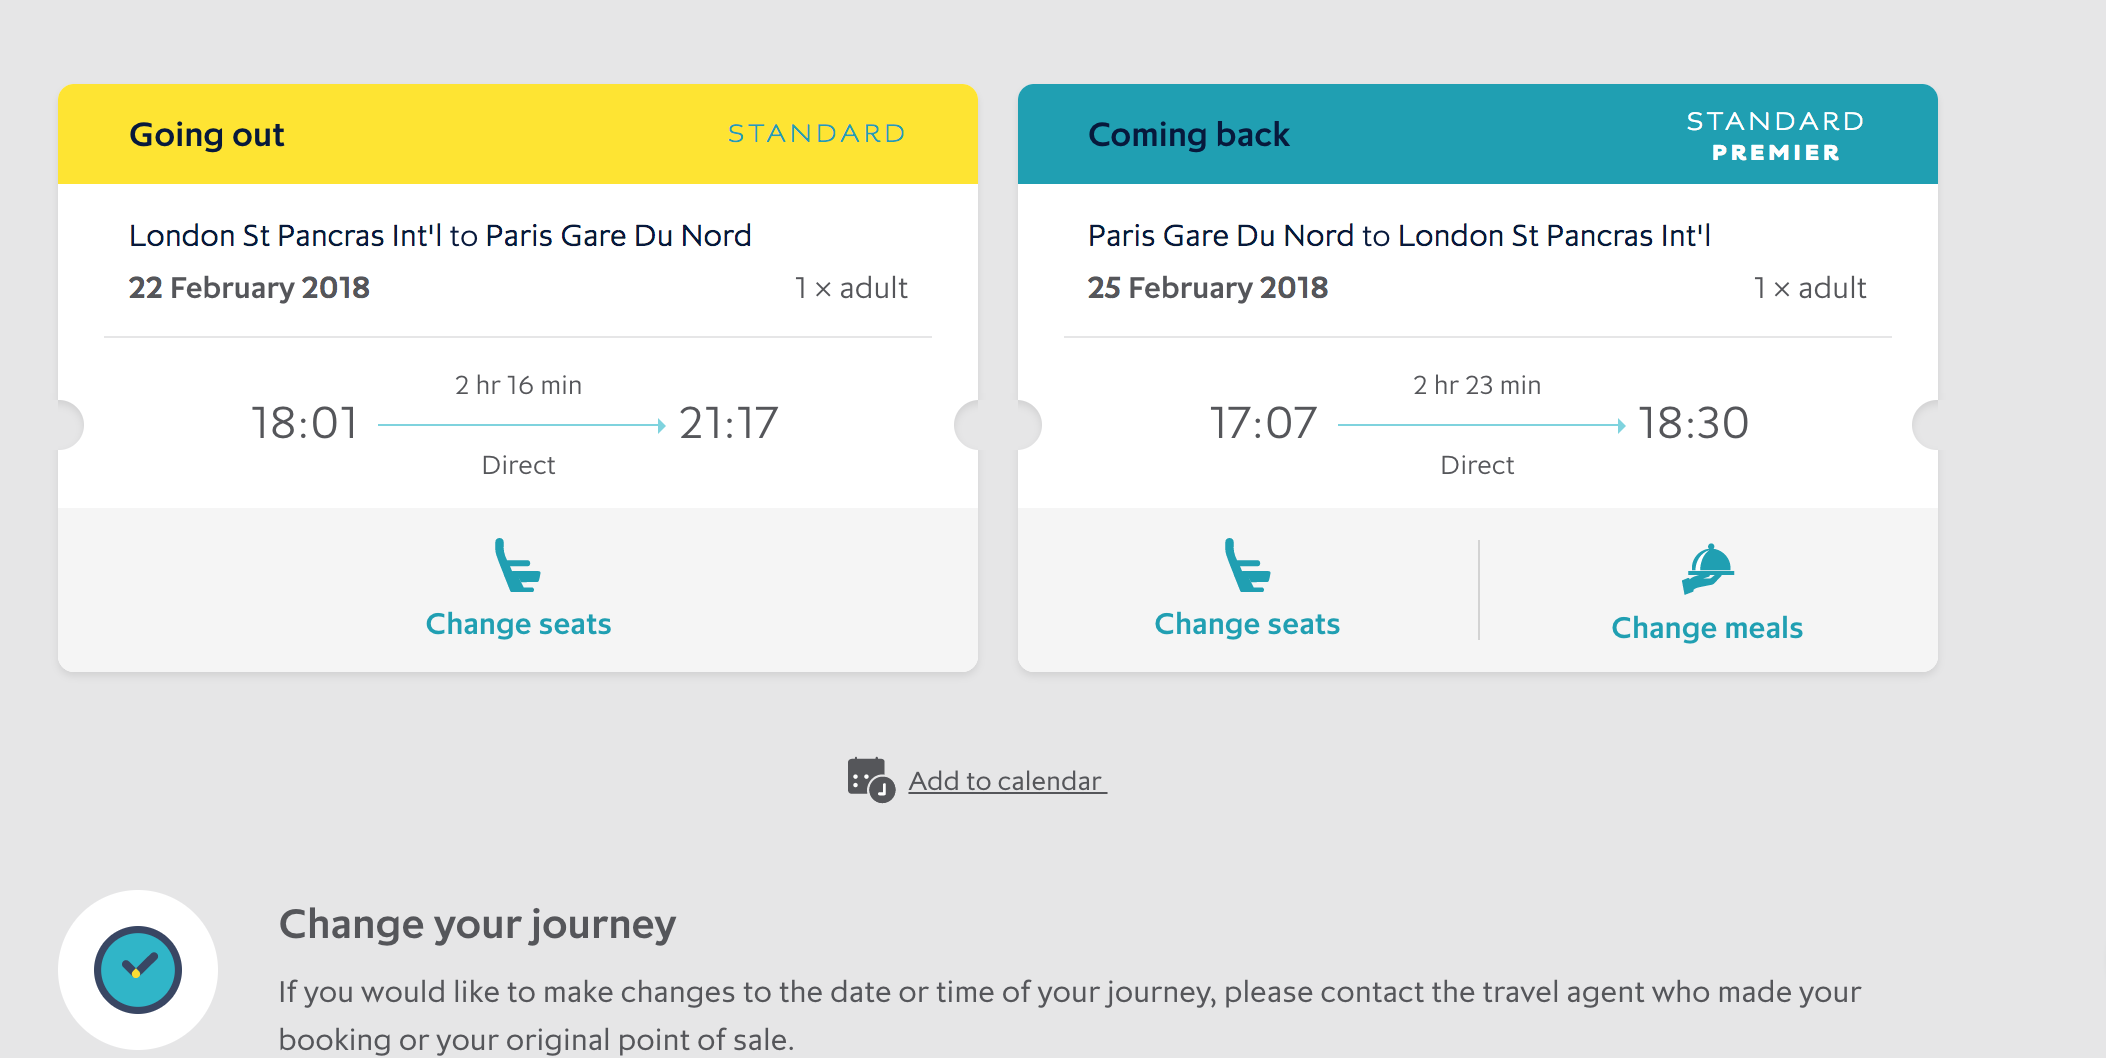 Can I change my seats? - Trainline Help (FAQ)